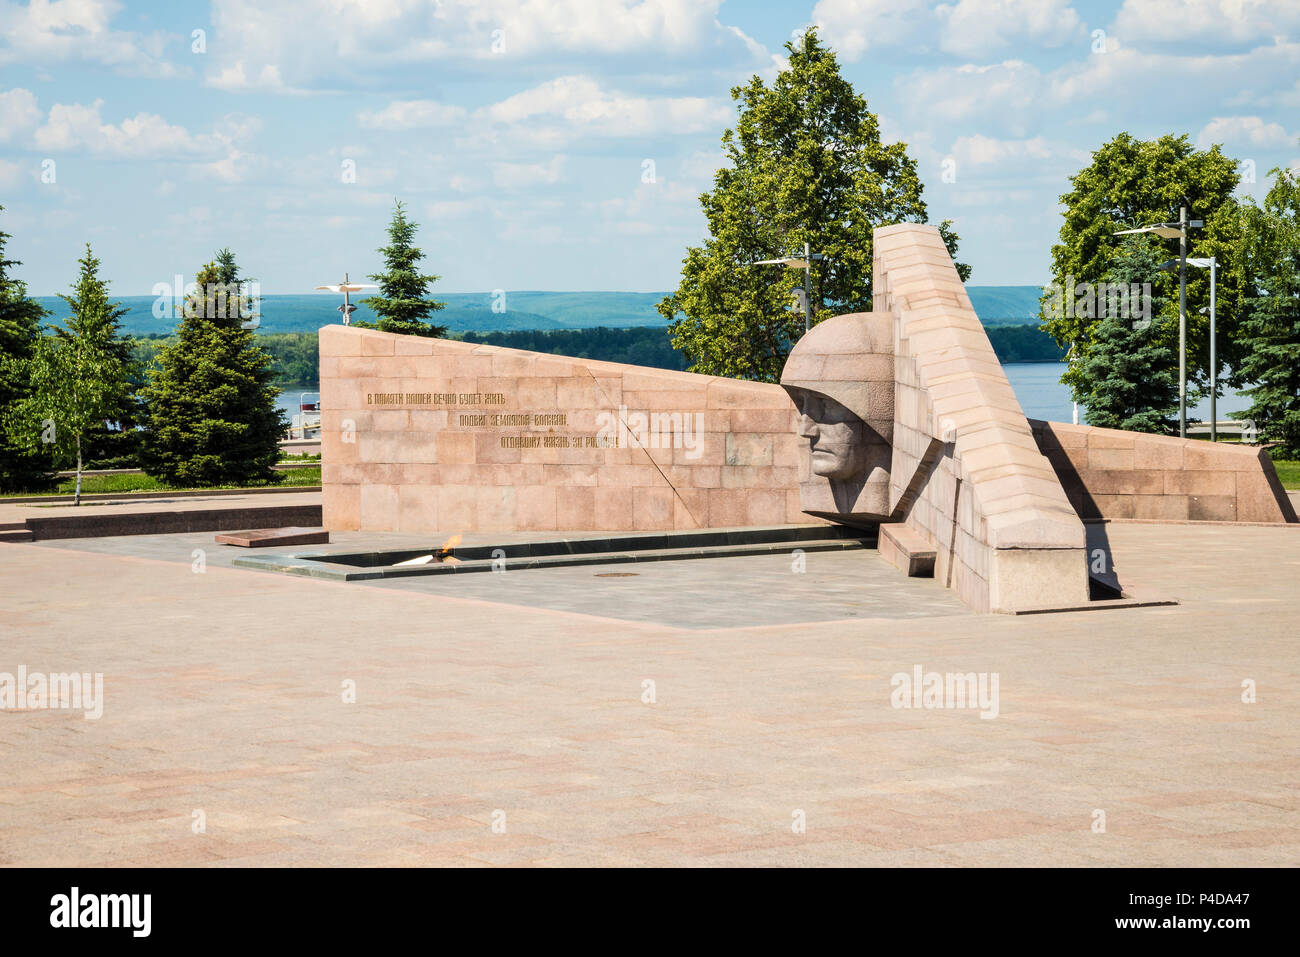 Memorial of the grieving mother Motherland in Victory square in Samara, Russia. - Stock Image